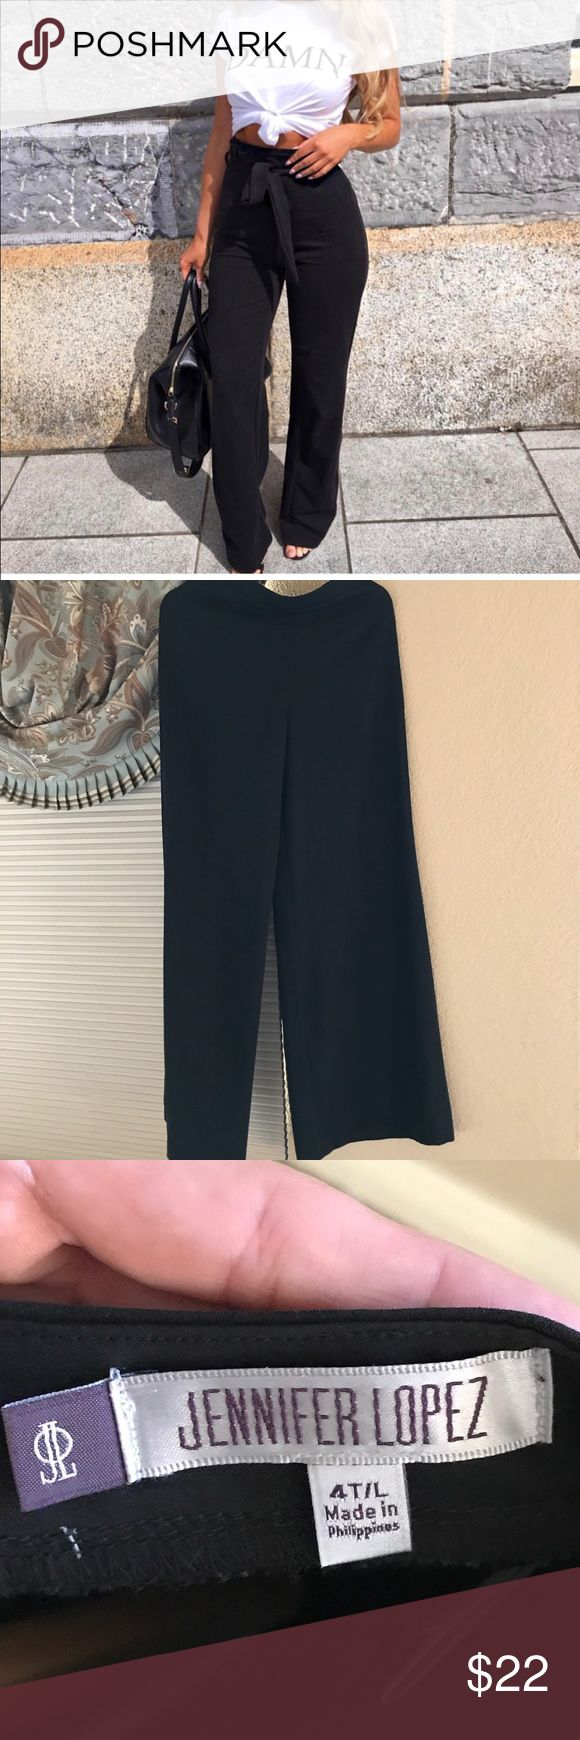 """DAMN top and wide leg pants I have the exact shirt for sale. Size small. Similar wide leg pants without a belt. Size 4 tall/long... $20 for both or $12 each. I'm 5'5"""" and wore the pants with 5"""" platforms and they fit perfect! No rips, tears, or stains on either item Other"""